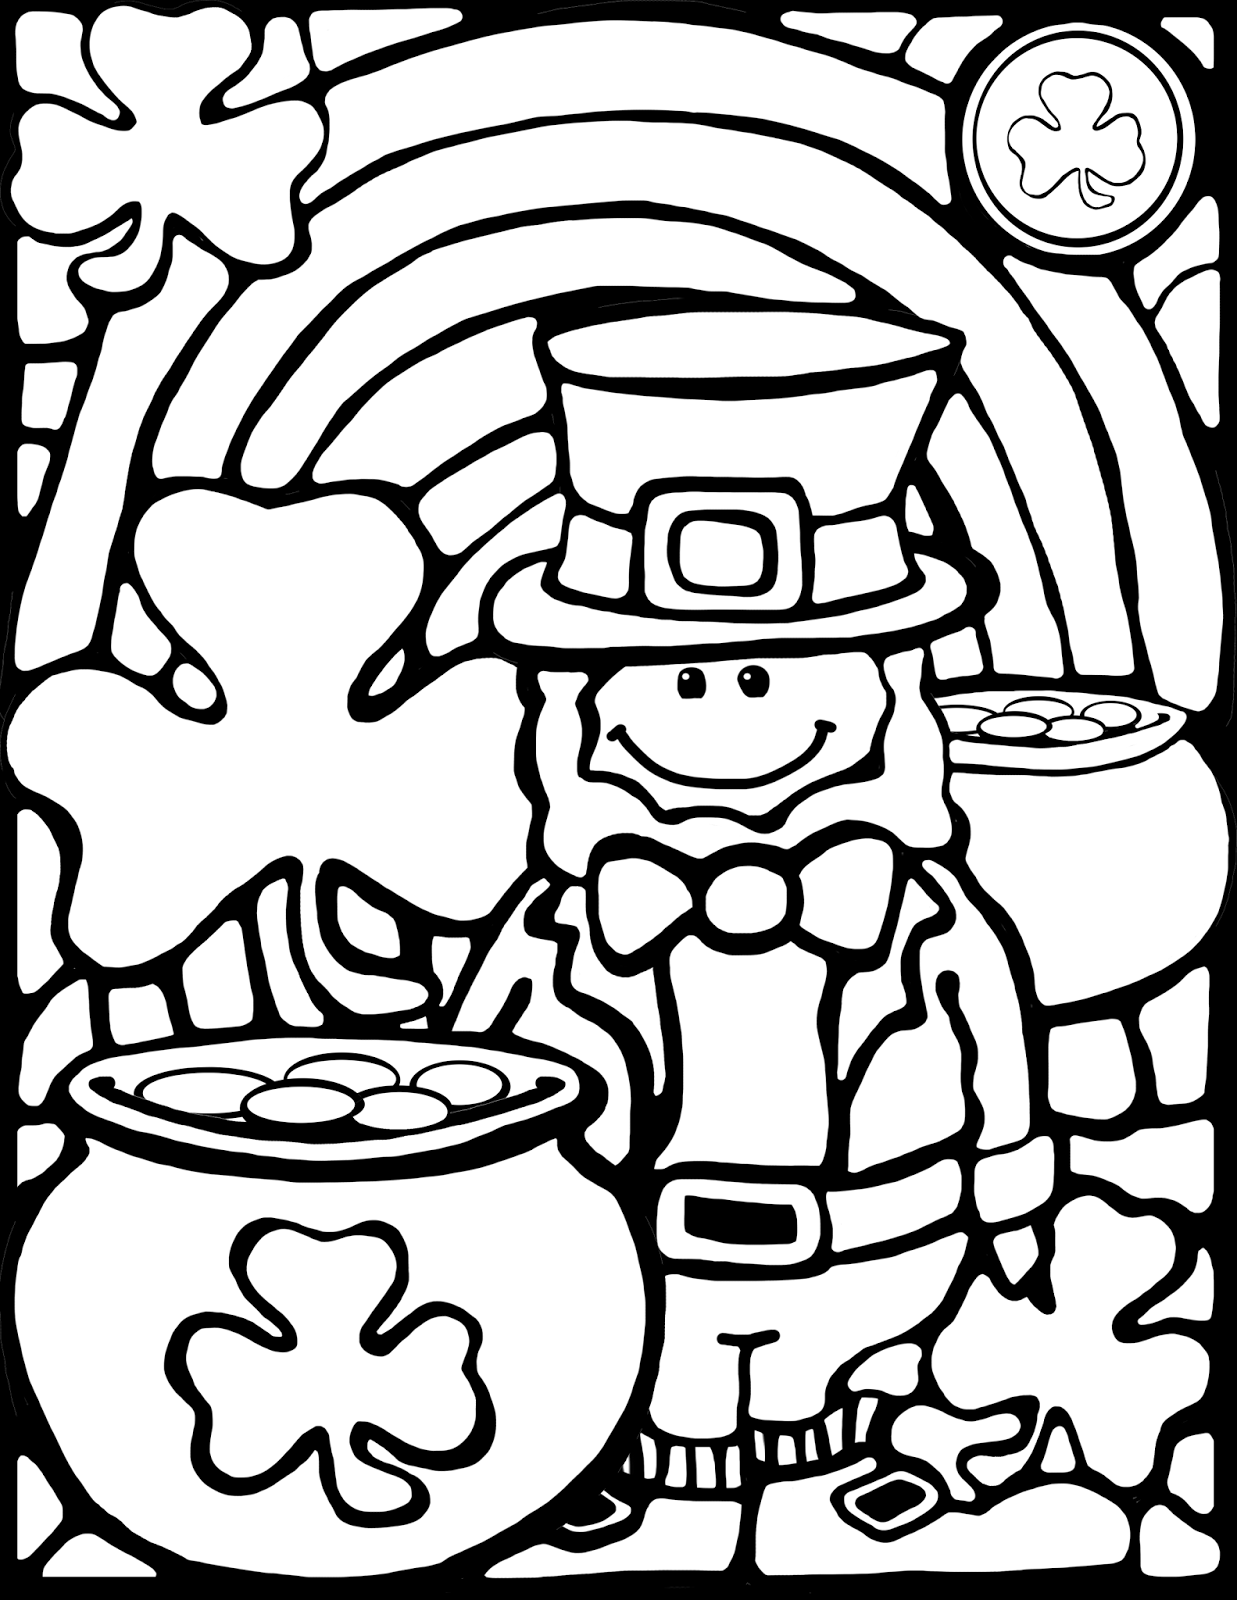 1237x1600 Handcuffs Coloring Pages Best Ideas For Printable And Coloring Pages